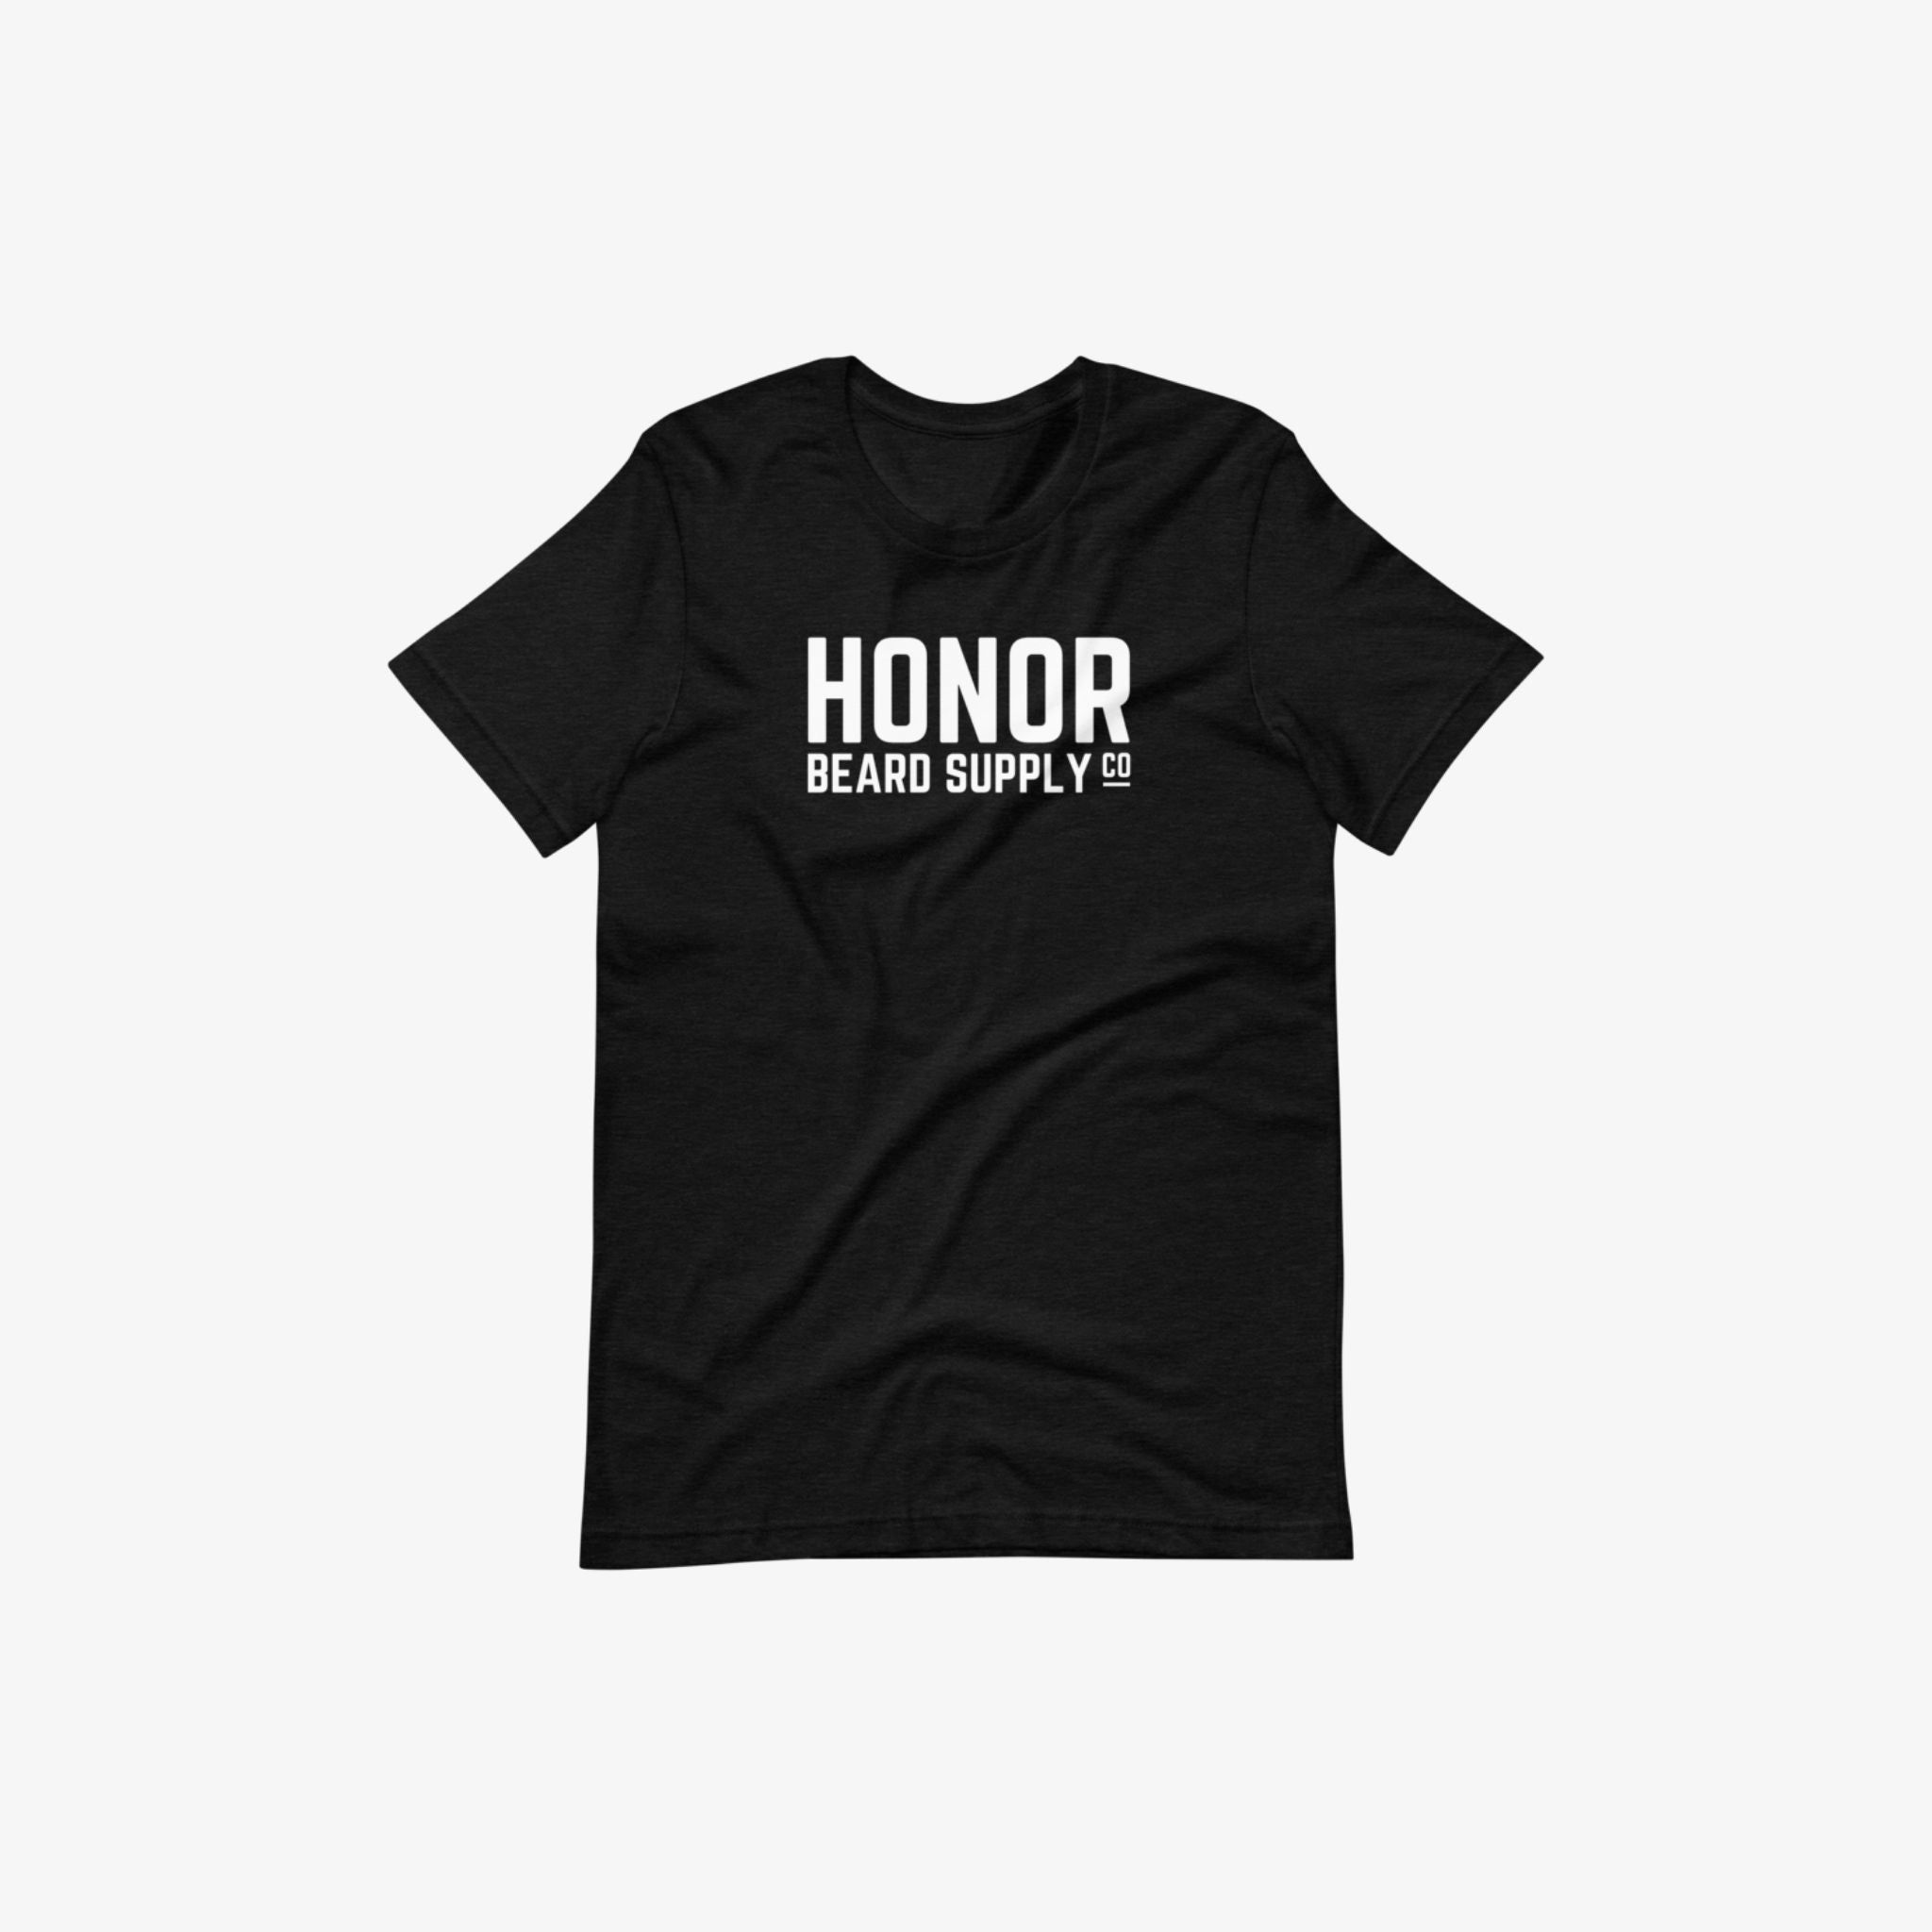 Honor's supply company tee in black and on a white background